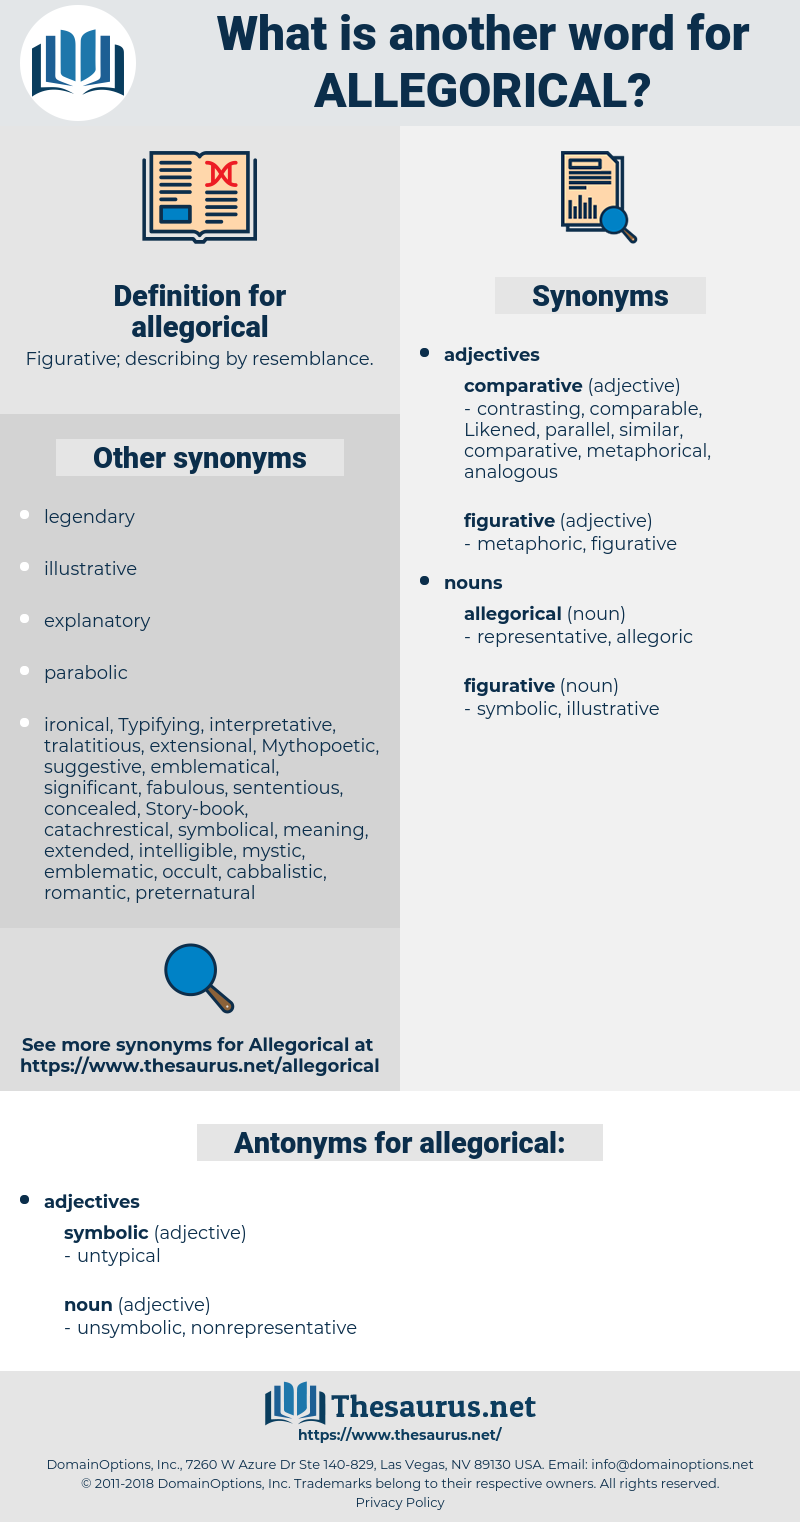 allegorical, synonym allegorical, another word for allegorical, words like allegorical, thesaurus allegorical